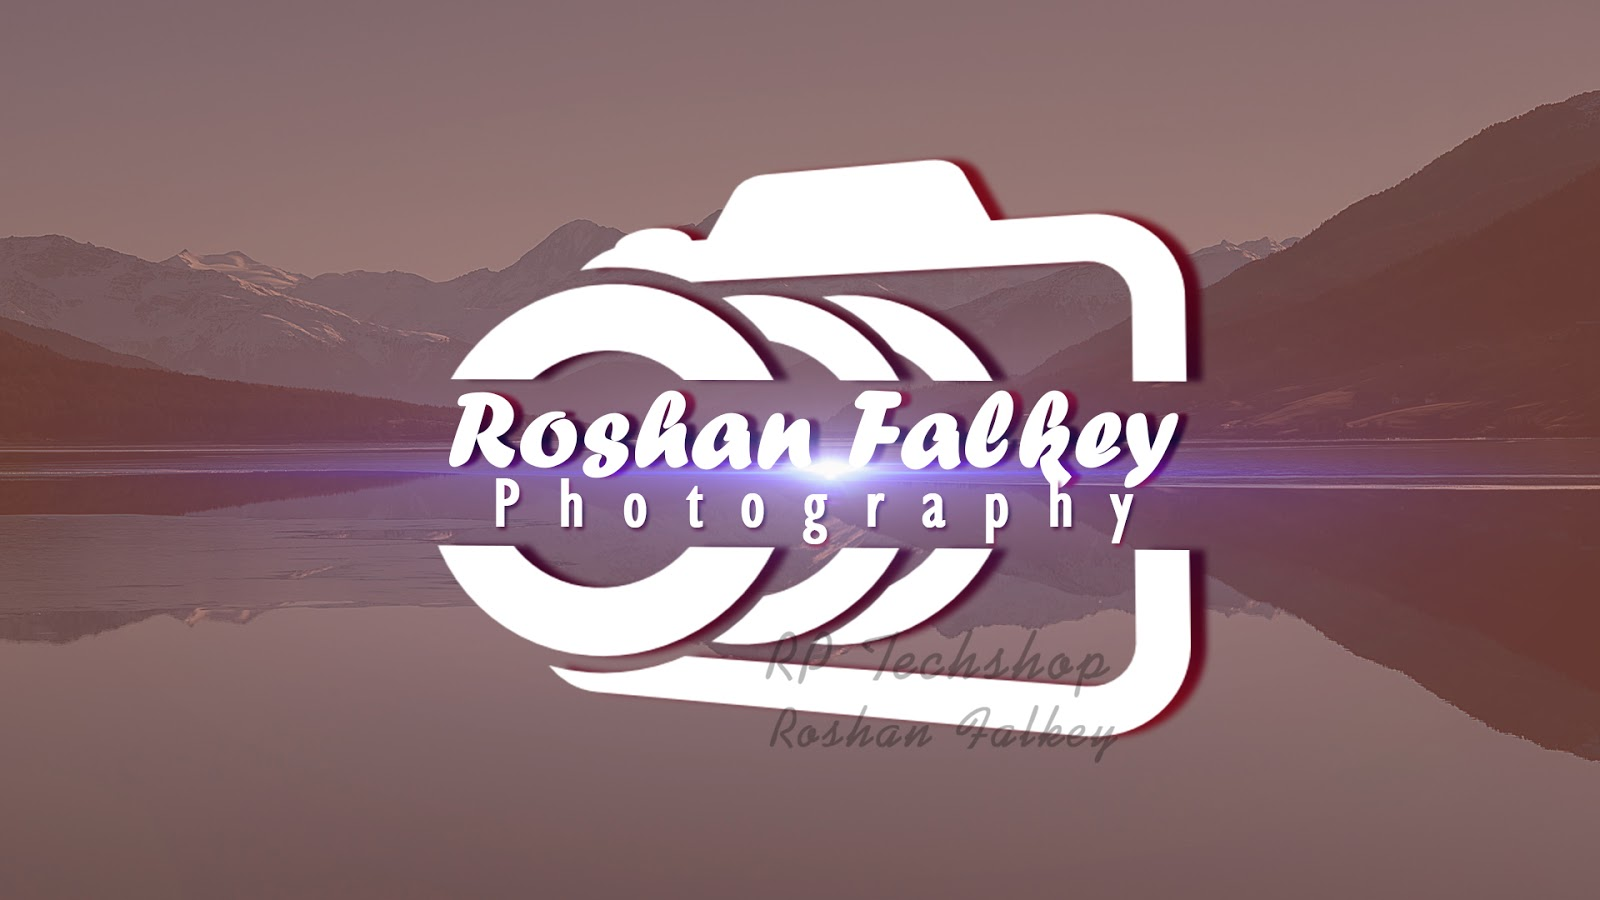 Photography logo design in photoshop rptechshop hello friends in this photoshop tutorial i will show you about photography logo design create your photography logo easily in photoshop baditri Gallery